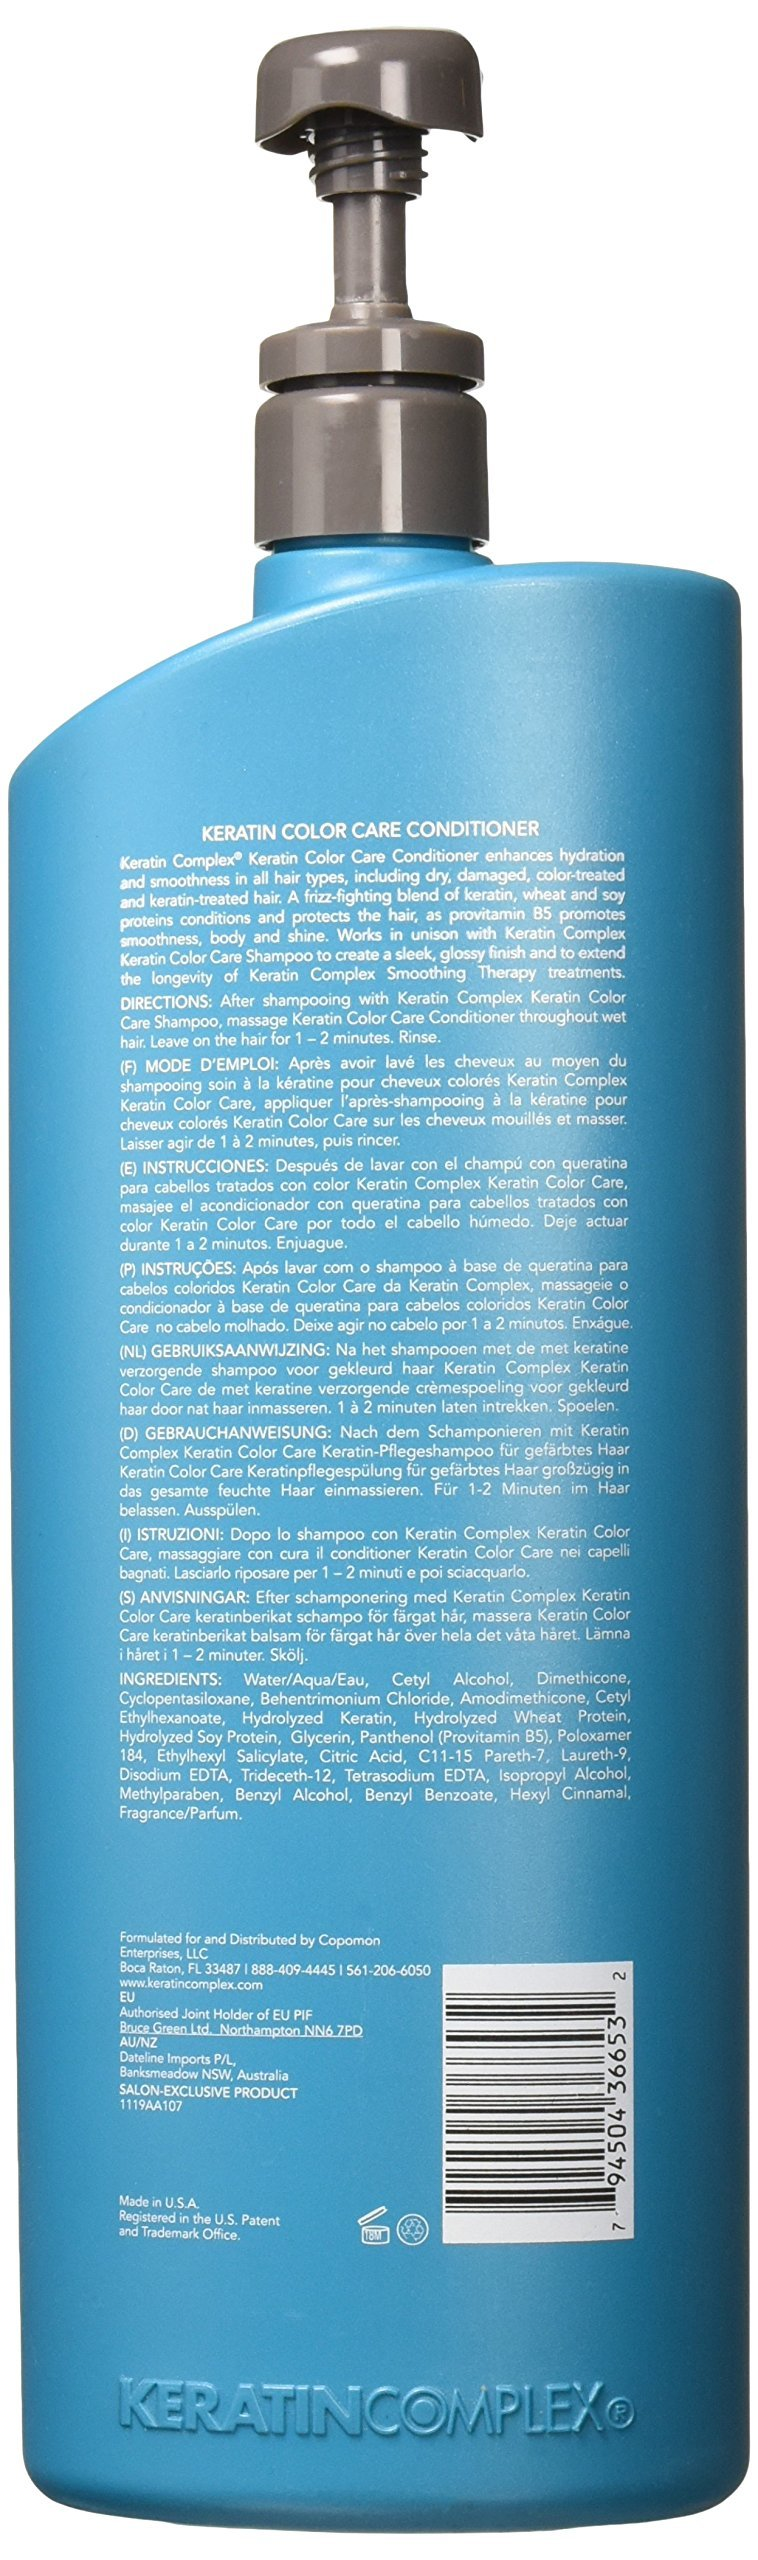 Keratin Complex Color Care Conditioner, 33.8 Oz